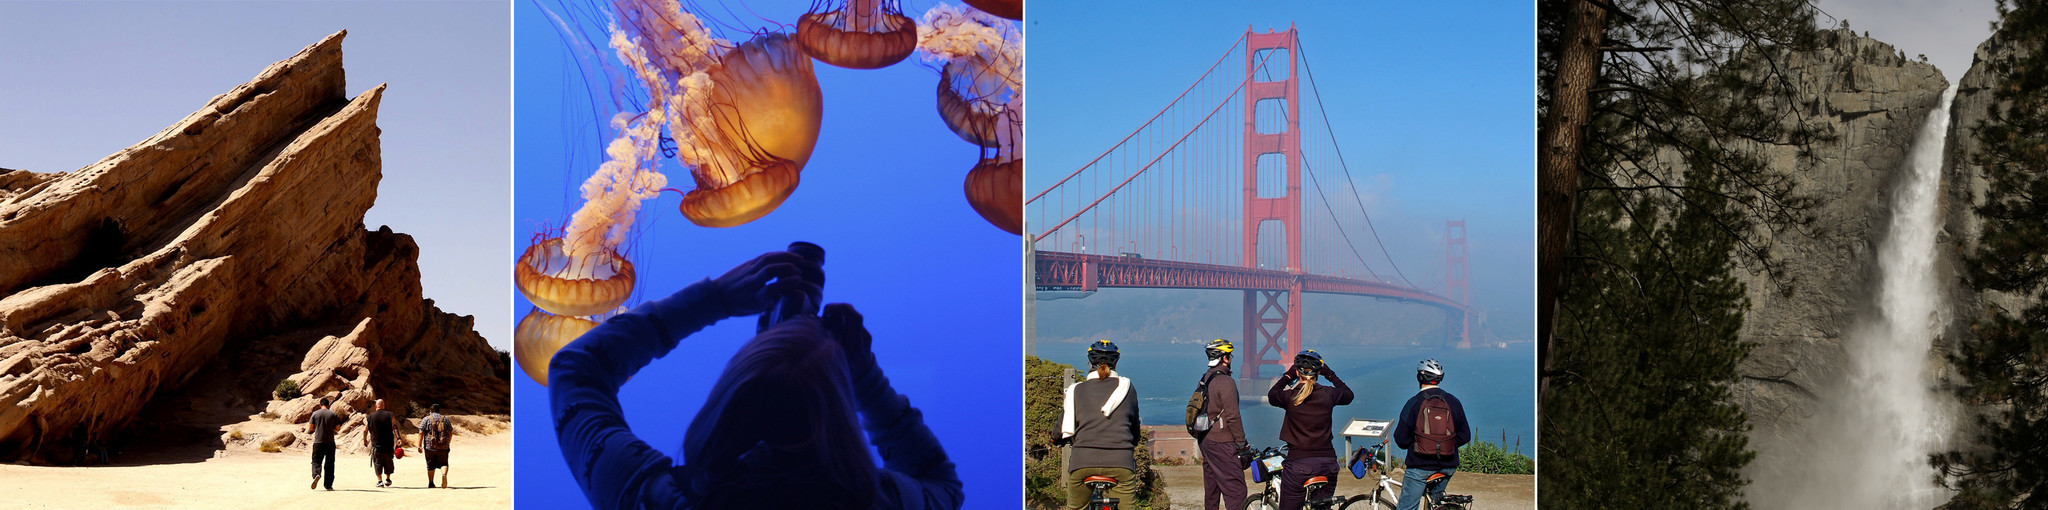 things to do in california the best adventures u0026 experiences la